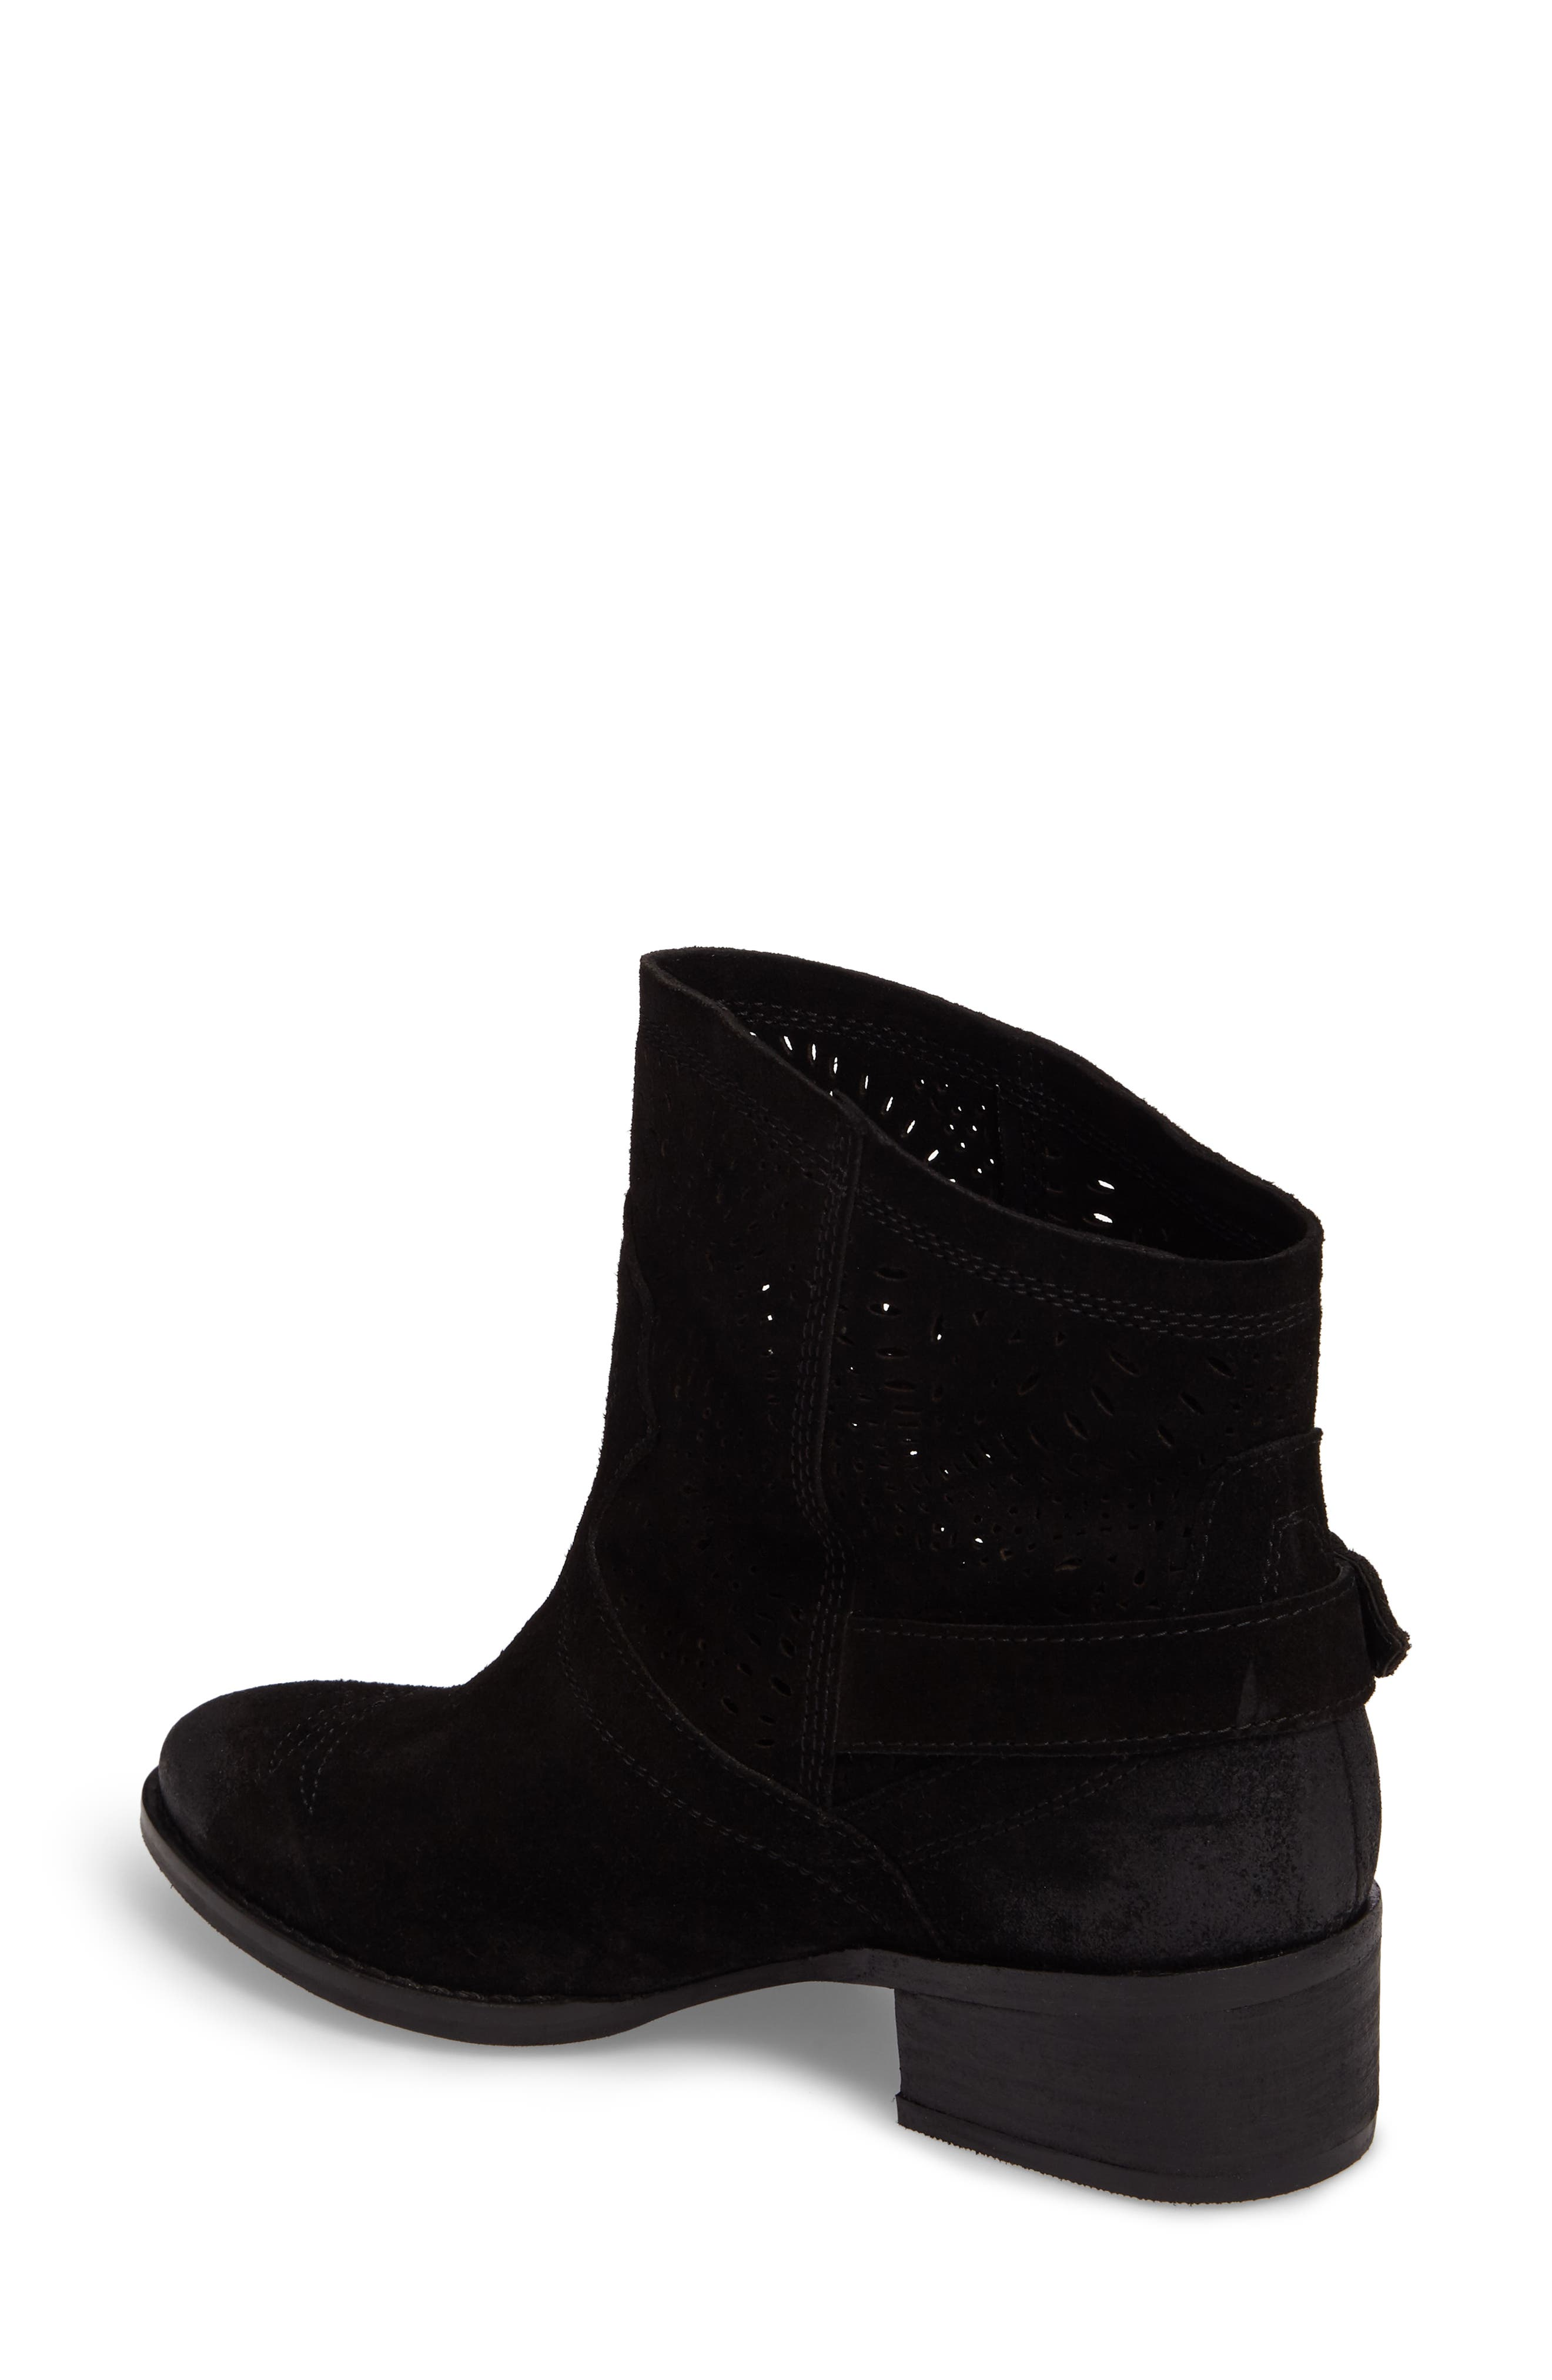 Zoey Perforated Bootie,                             Alternate thumbnail 2, color,                             Black Suede